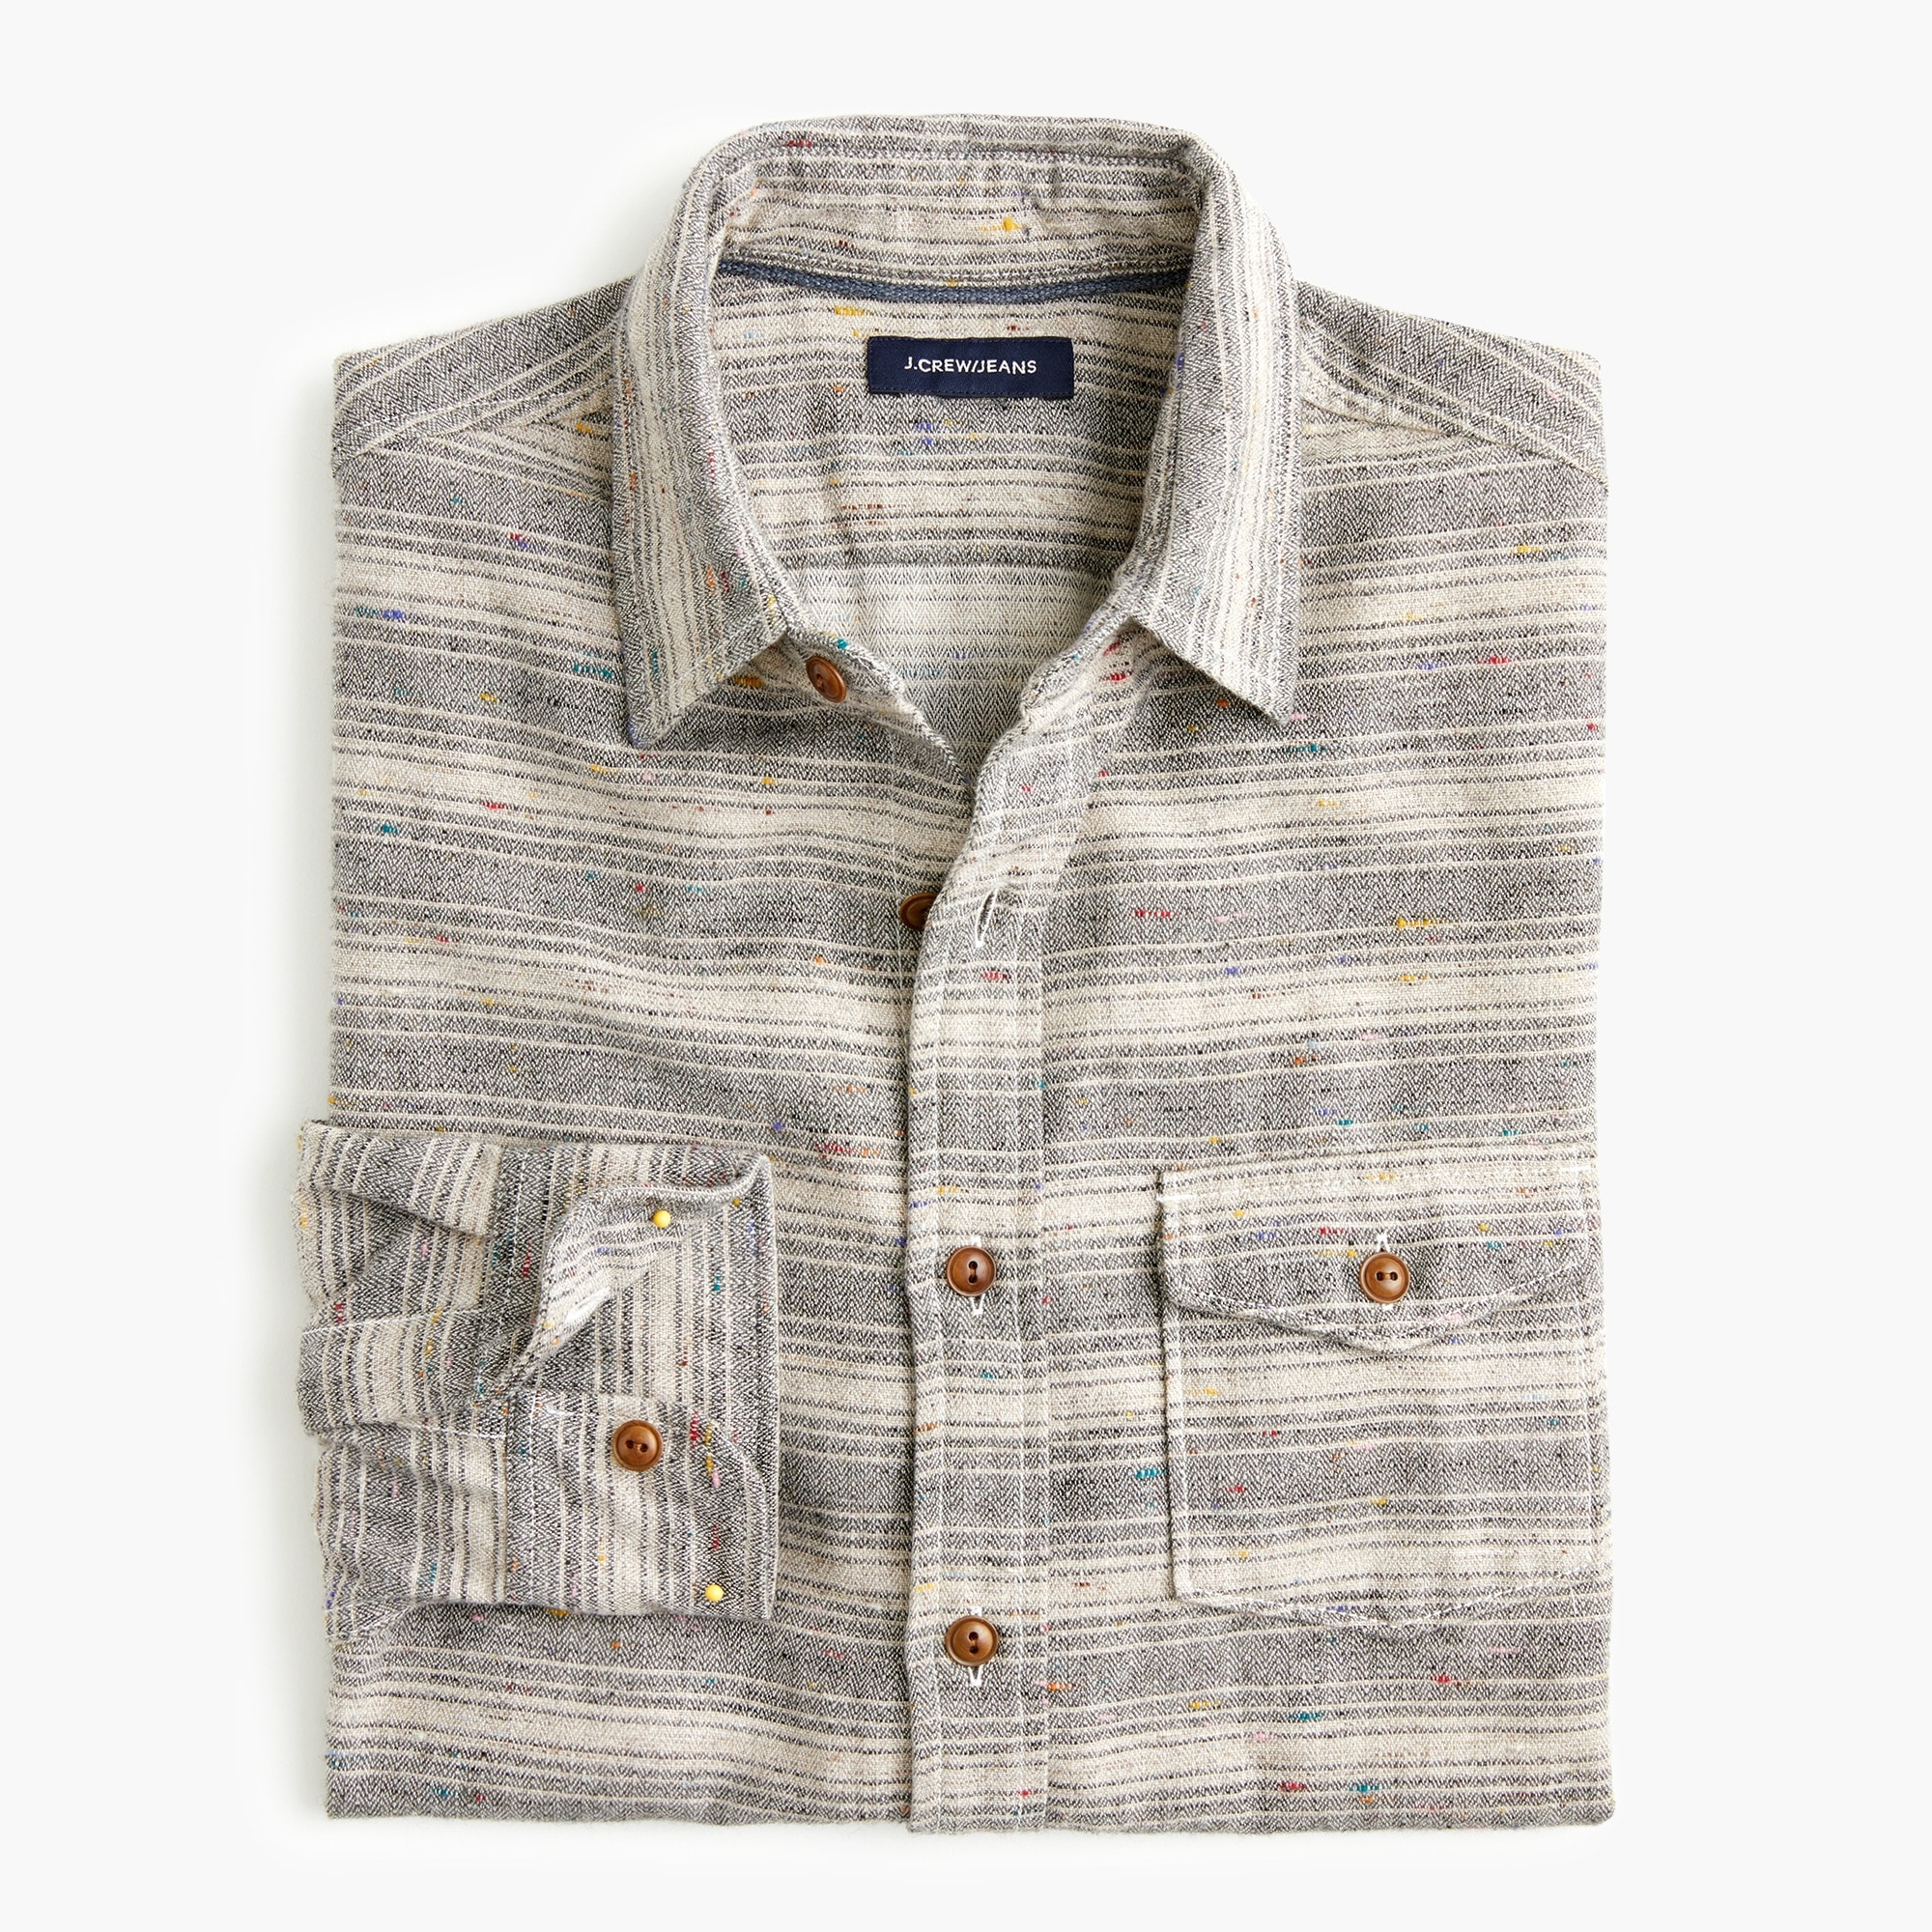 mens Slim Japanese slub herringbone shirt